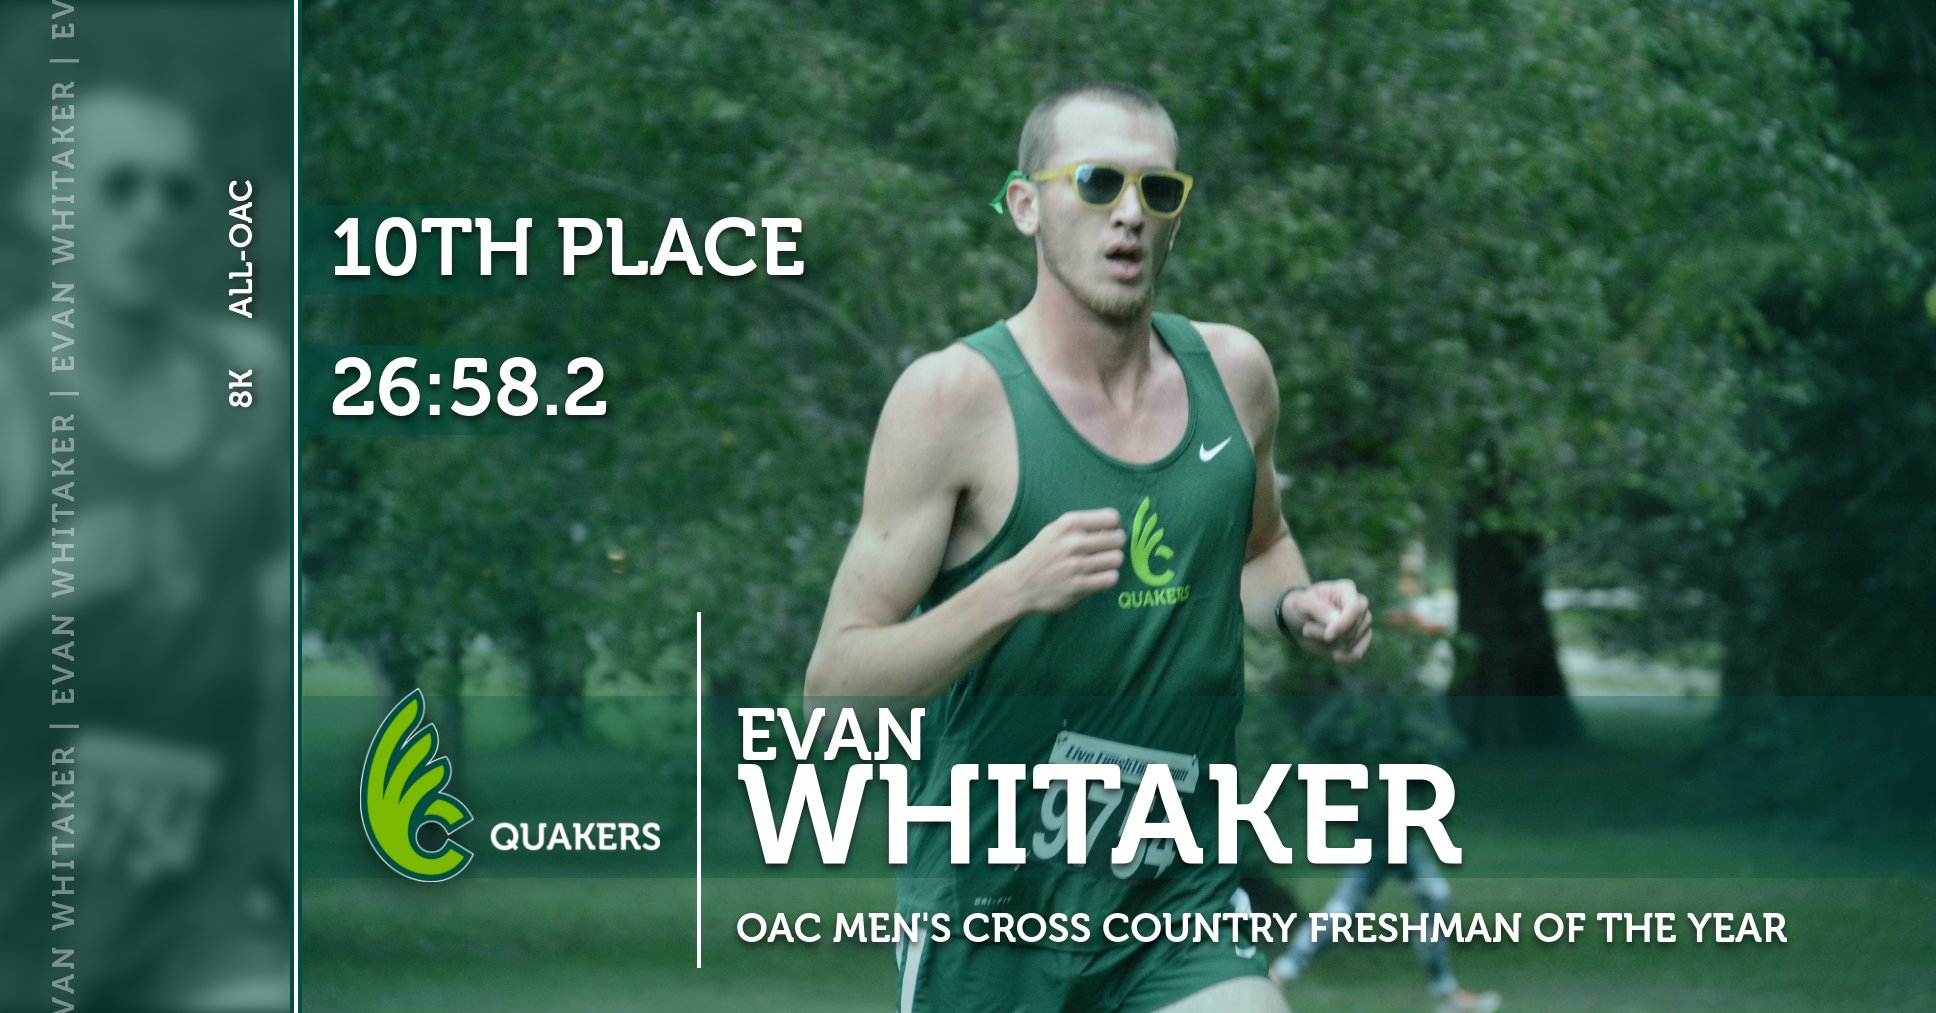 Evan Whitaker Named OAC Men's Cross Country Freshman of the Year